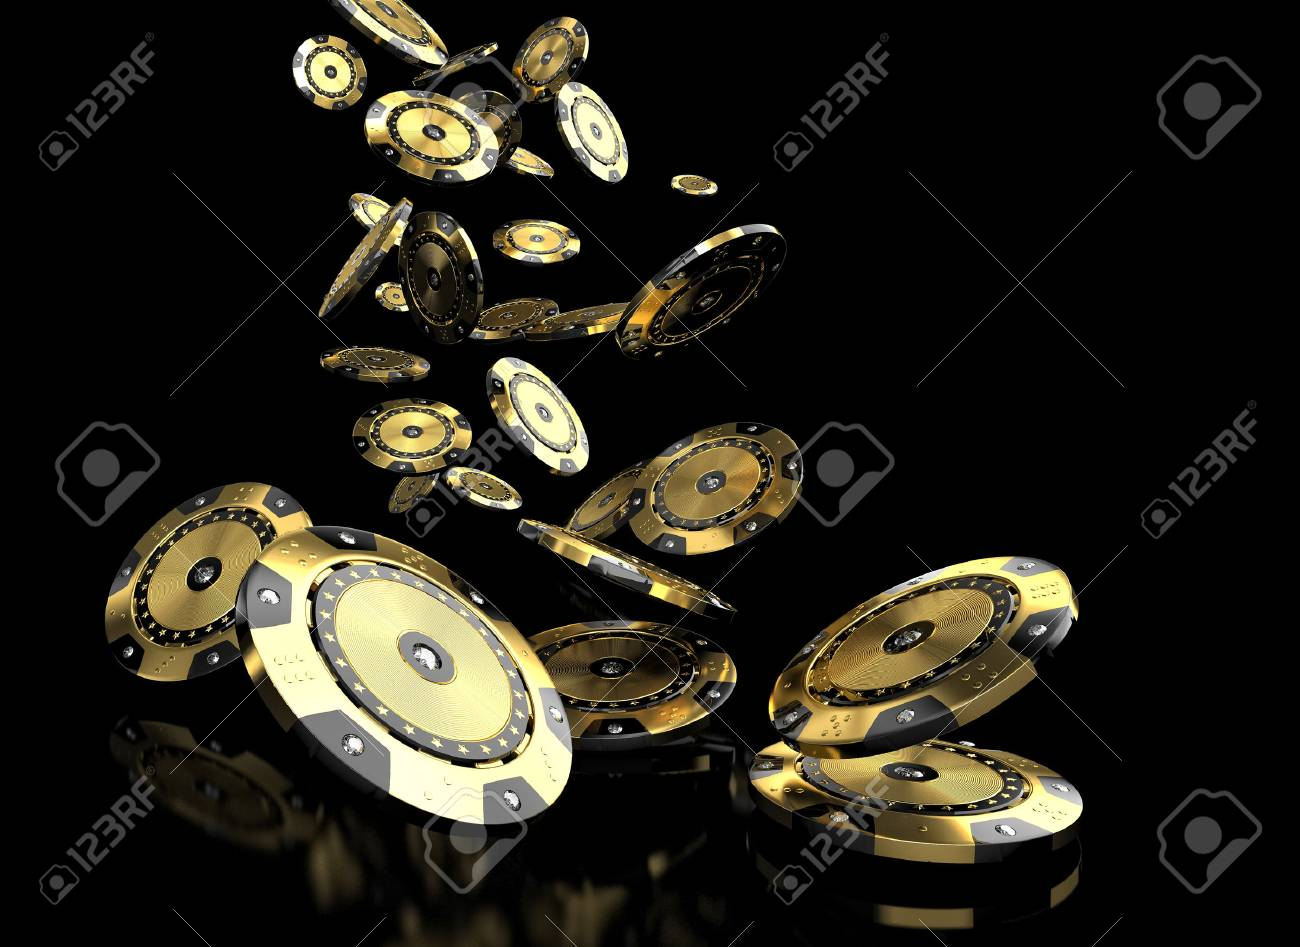 luxury casino chip gold and diamond 3d rendering image - 71965796